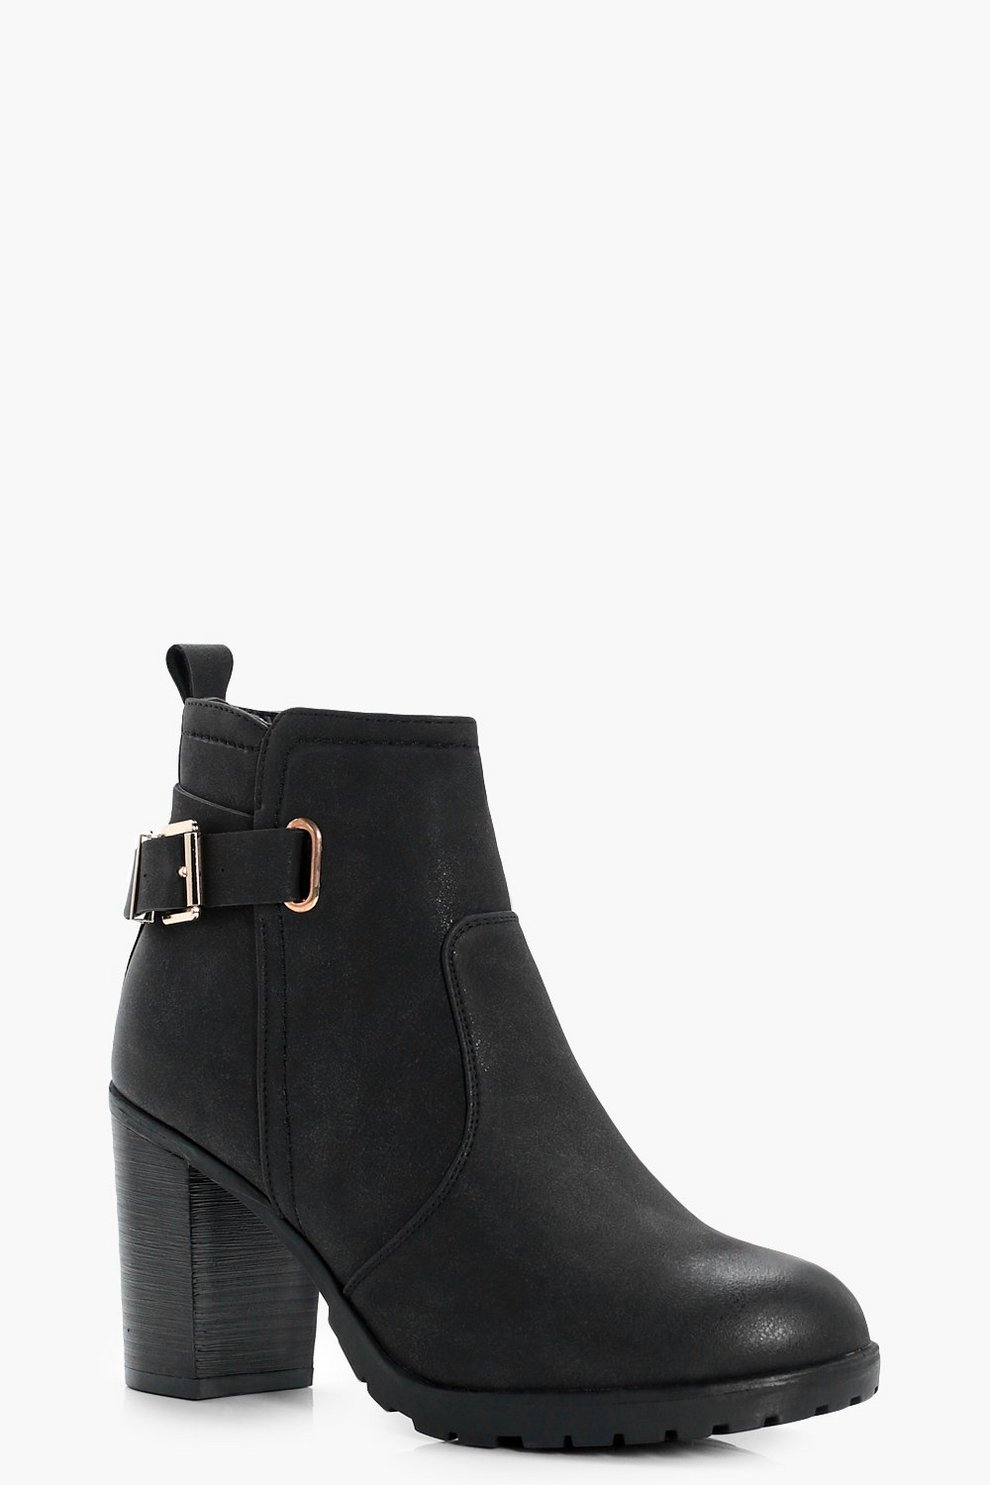 cheap recommend Boohoo Buckle Detail Heeled Boot clearance outlet store deals online discount fake z1Sc5BcO